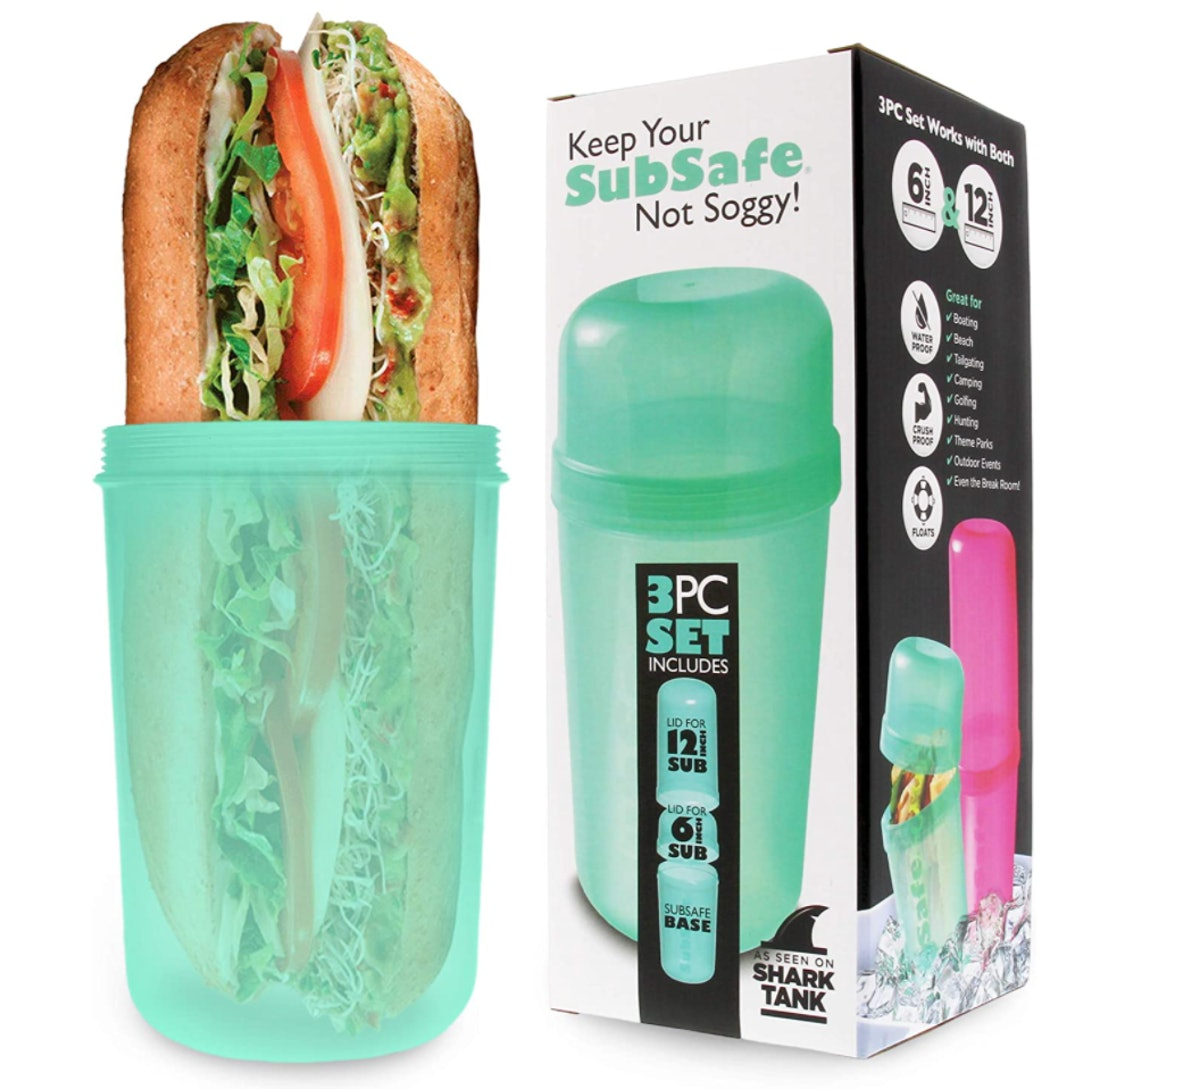 SubSafe Sandwich Container